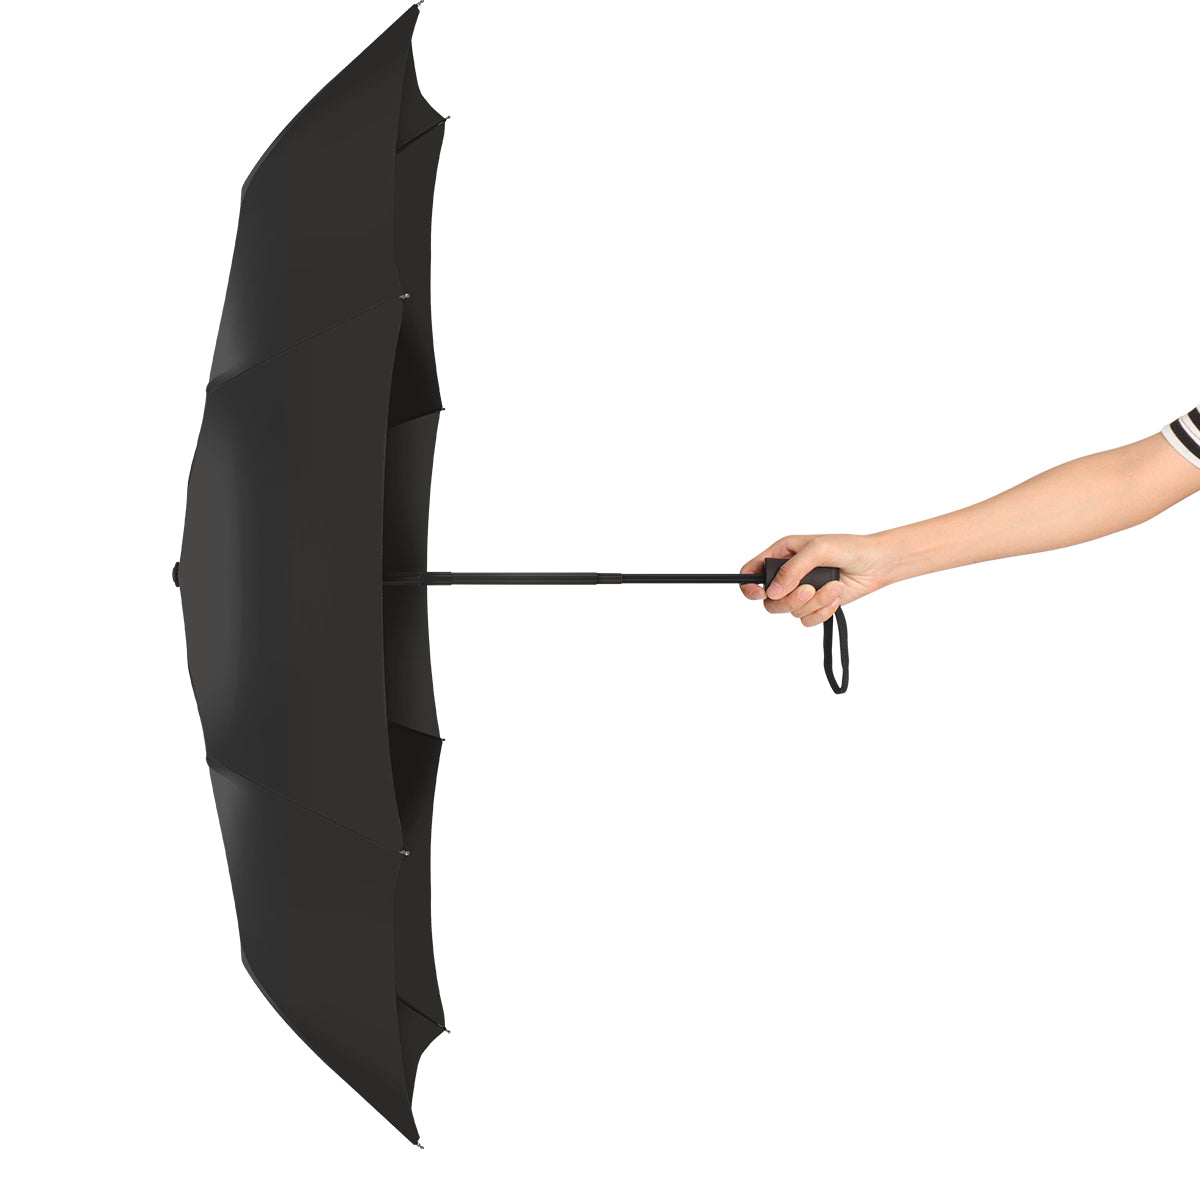 Xmund XD-HK2 Automatic Umbrella 2-3 People Portable UPF50+ Sunshade Waterproof Folding Camping Umbrella